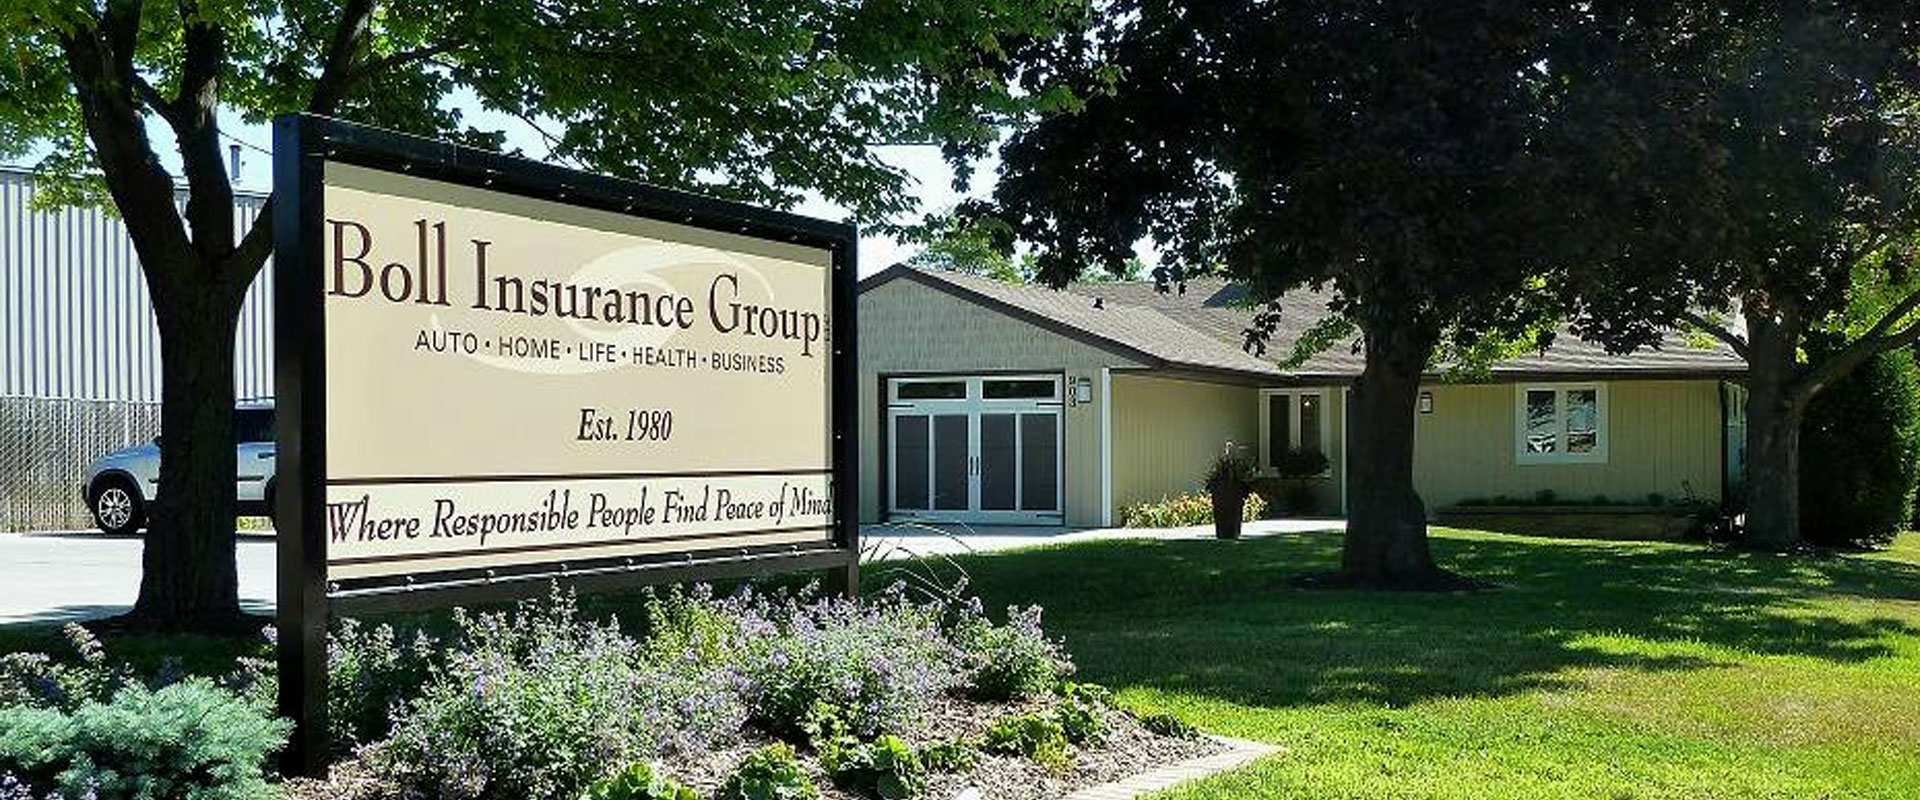 Boll Insurance Group, LLC